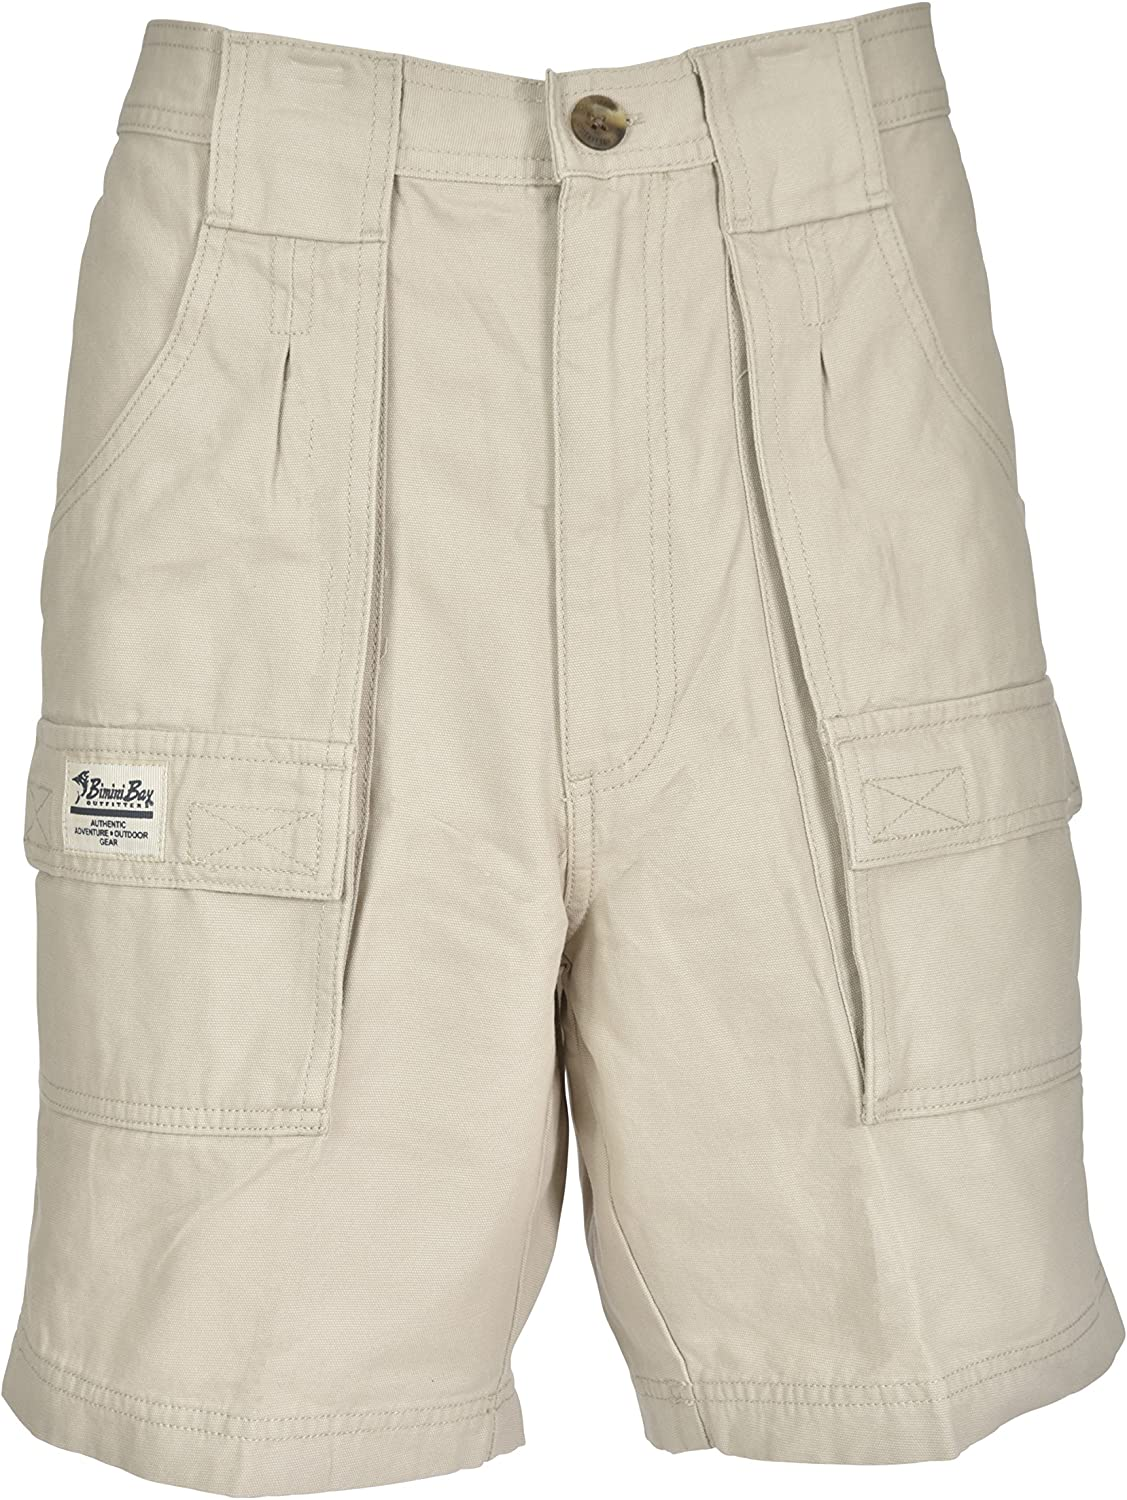 Bimini Bay OUTFITTERS Men's Outback Hiker Cotton Cargo Short